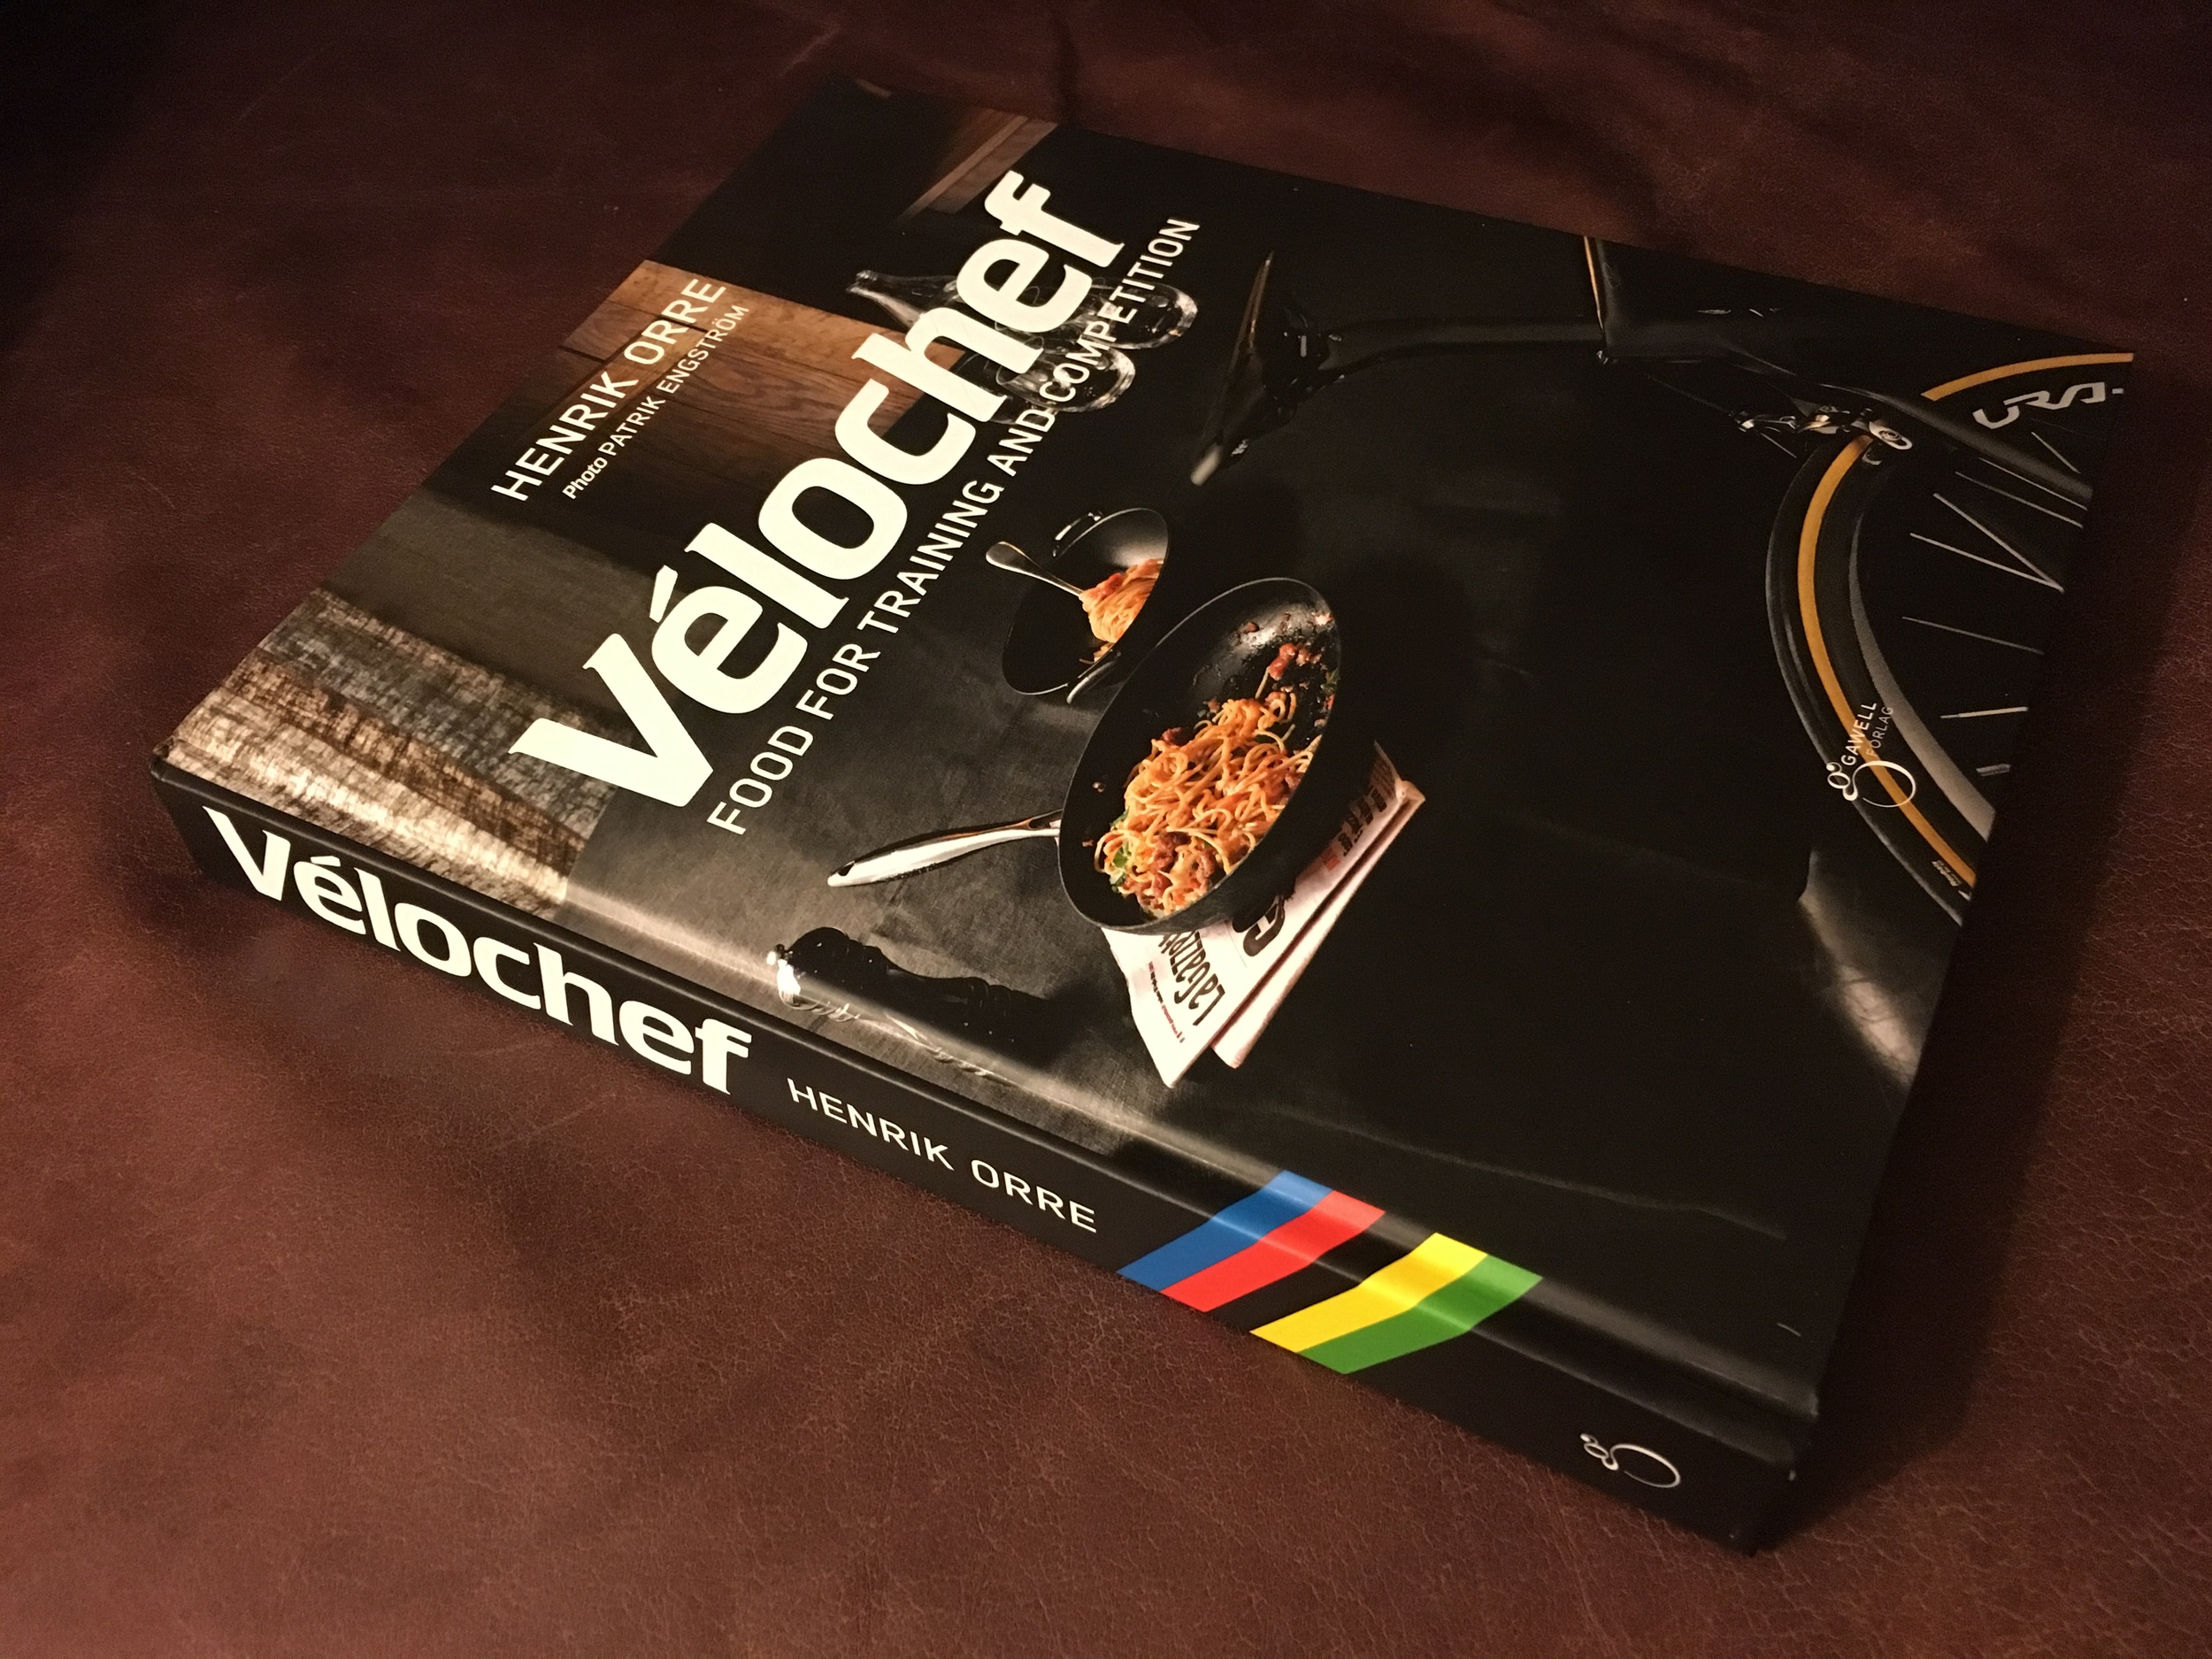 Vélochef - Food for Training and Competition